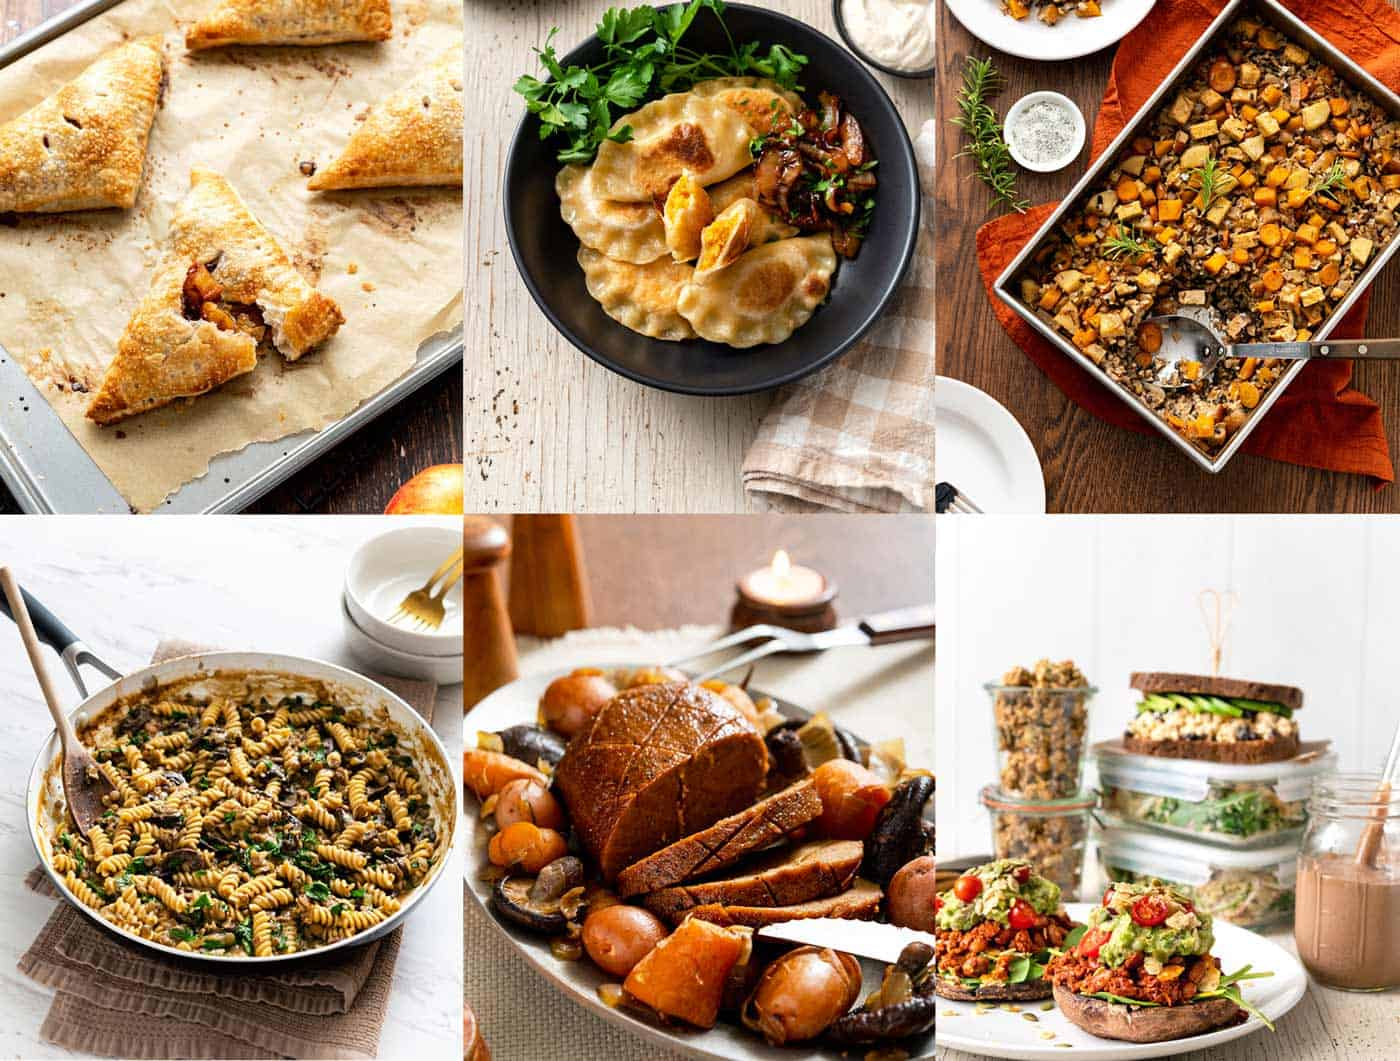 Image collage of various vegan recipes, like pierogi, seitan roast, meal prep, and pasta